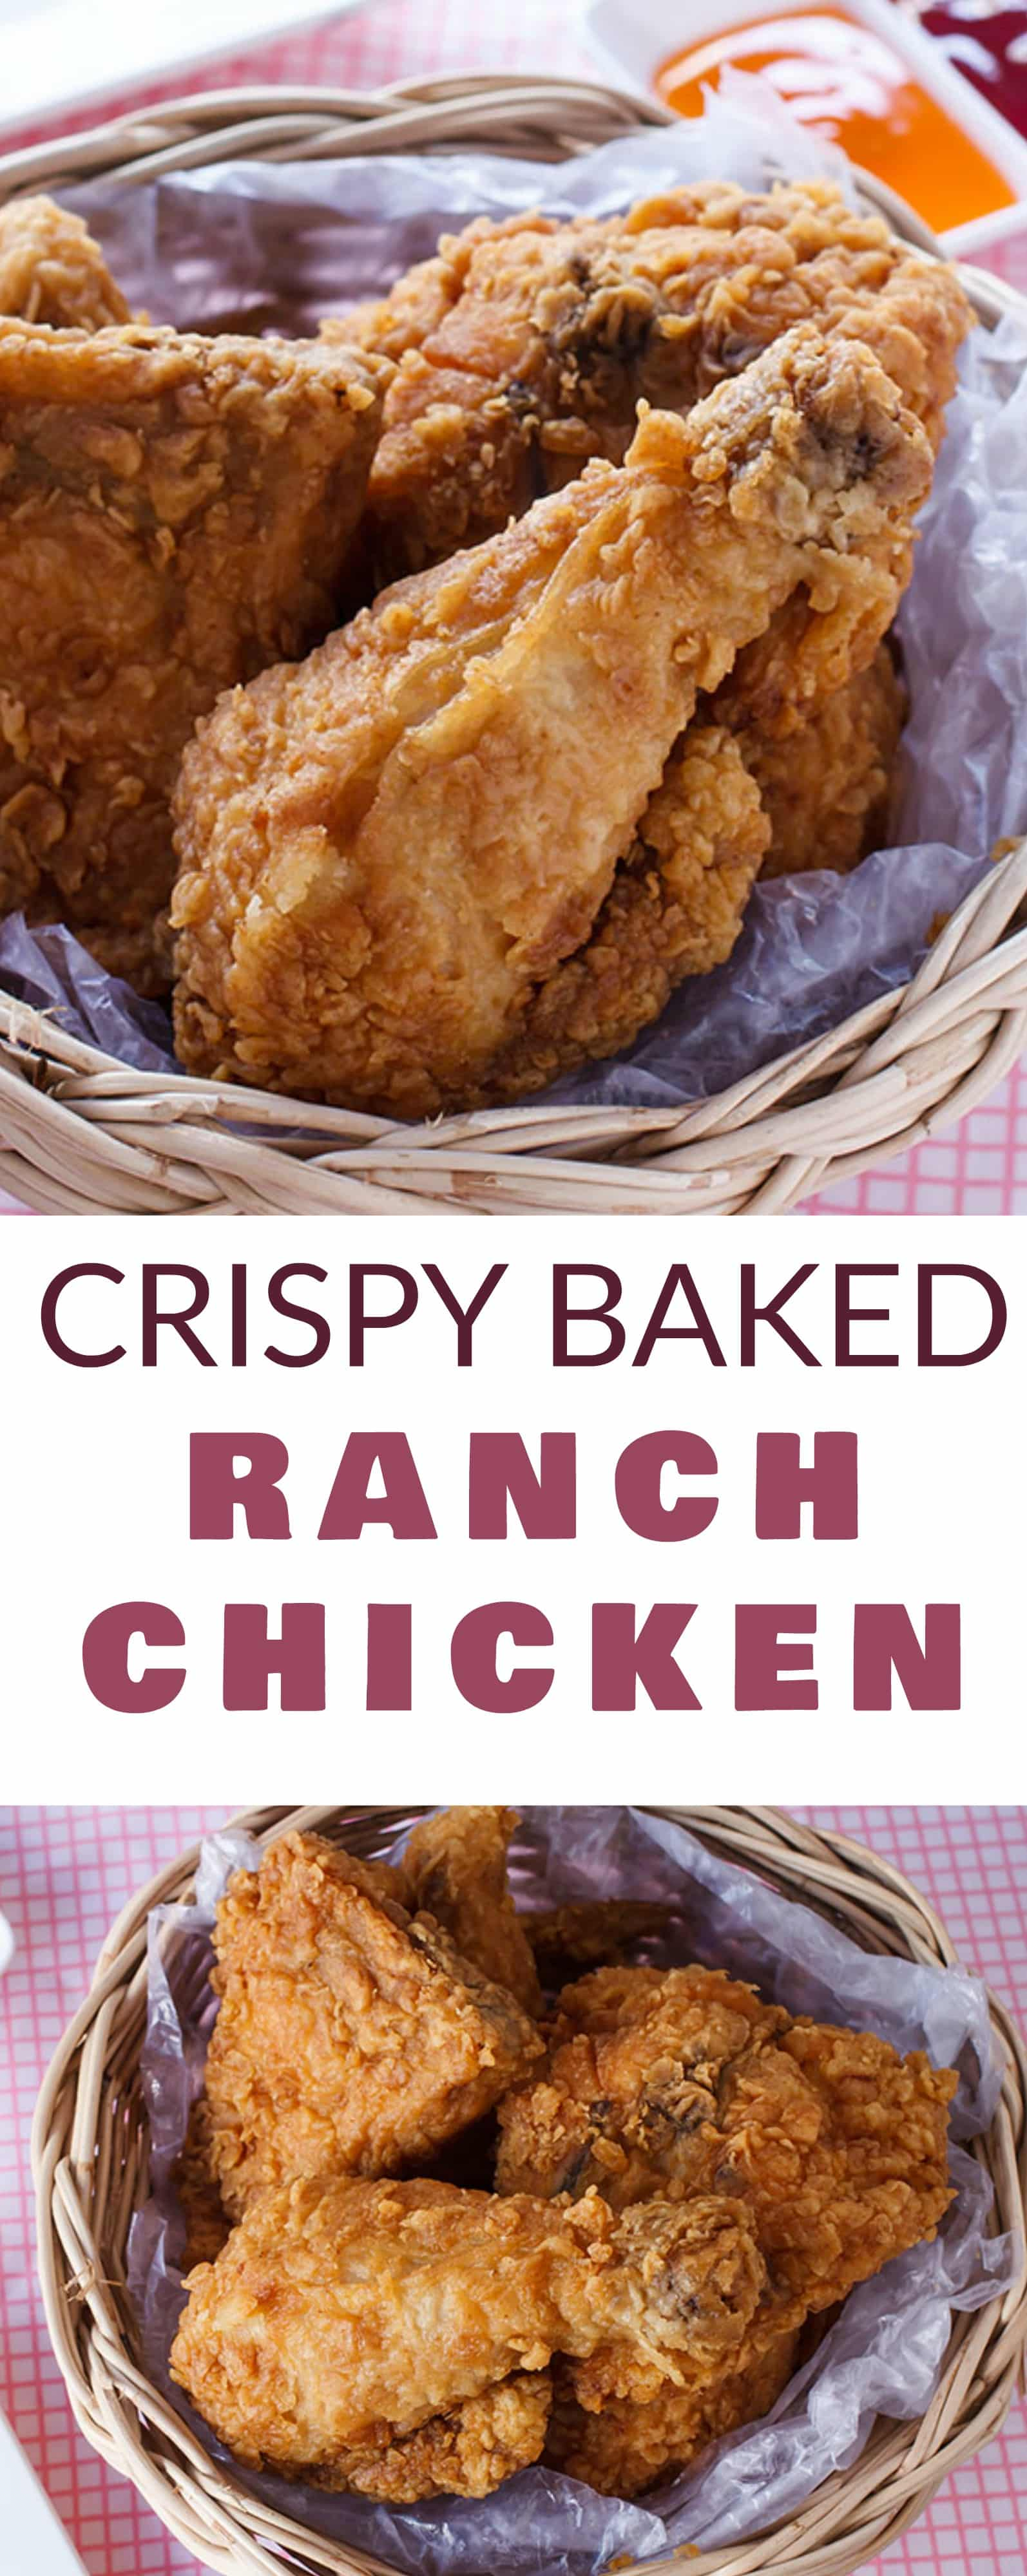 CRISPY chicken made with RANCH dip and baked in the oven! This easy Crispy Baked Ranch Chicken recipe only needs a few ingredients and makes a healthy dinner! Serve with a salad or some fresh vegetables on the side! I love making this recipe with chicken breasts and drumsticks so my entire family is happy!